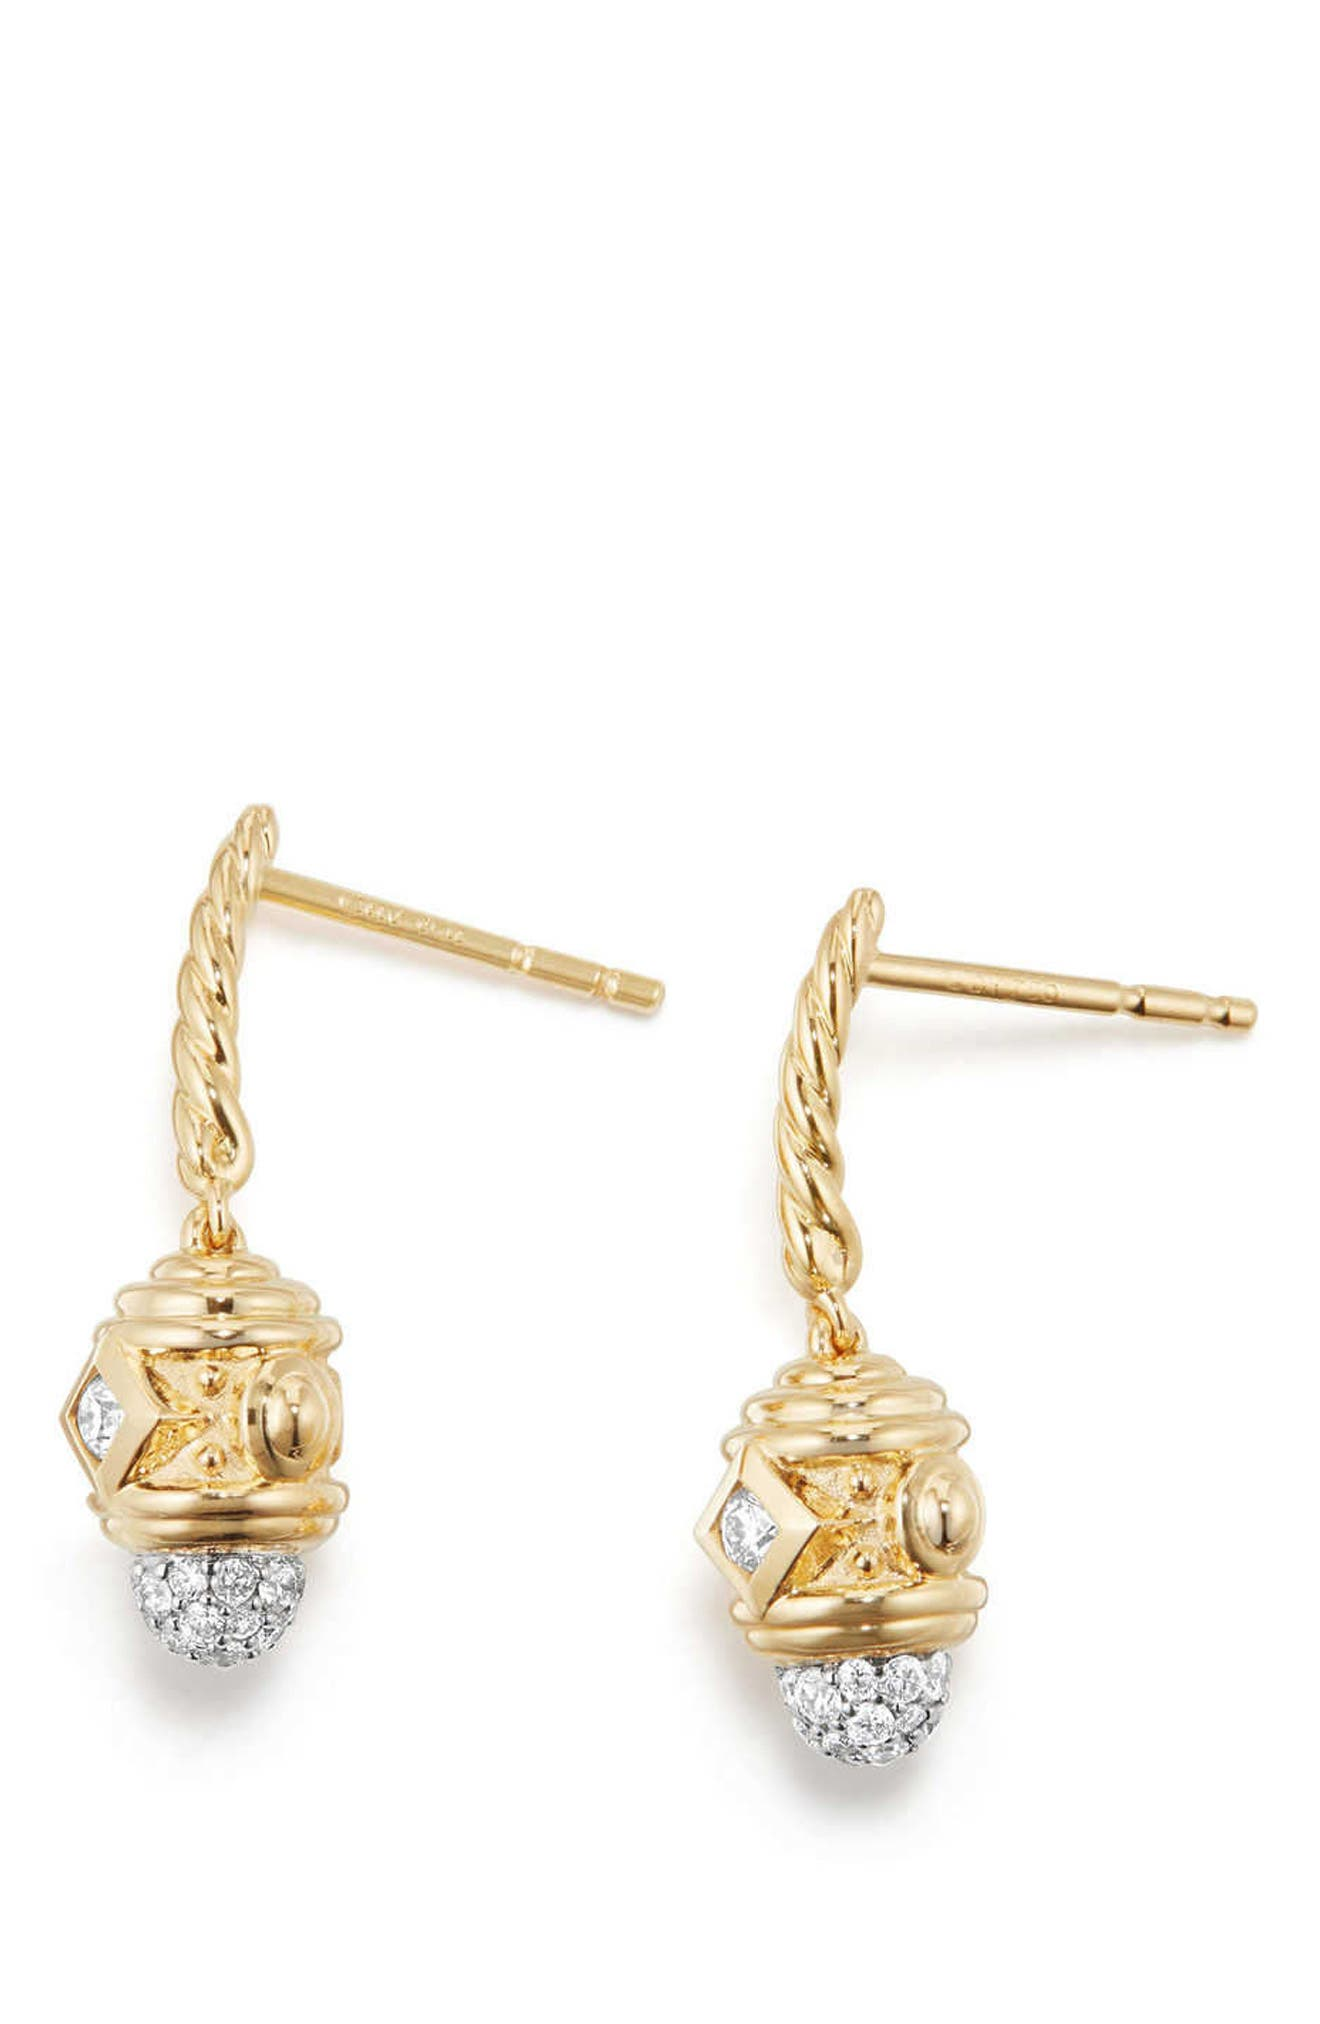 Renaissance Drop Earrings with Diamonds in 18K Gold,                             Alternate thumbnail 2, color,                             Gold/ Diamond